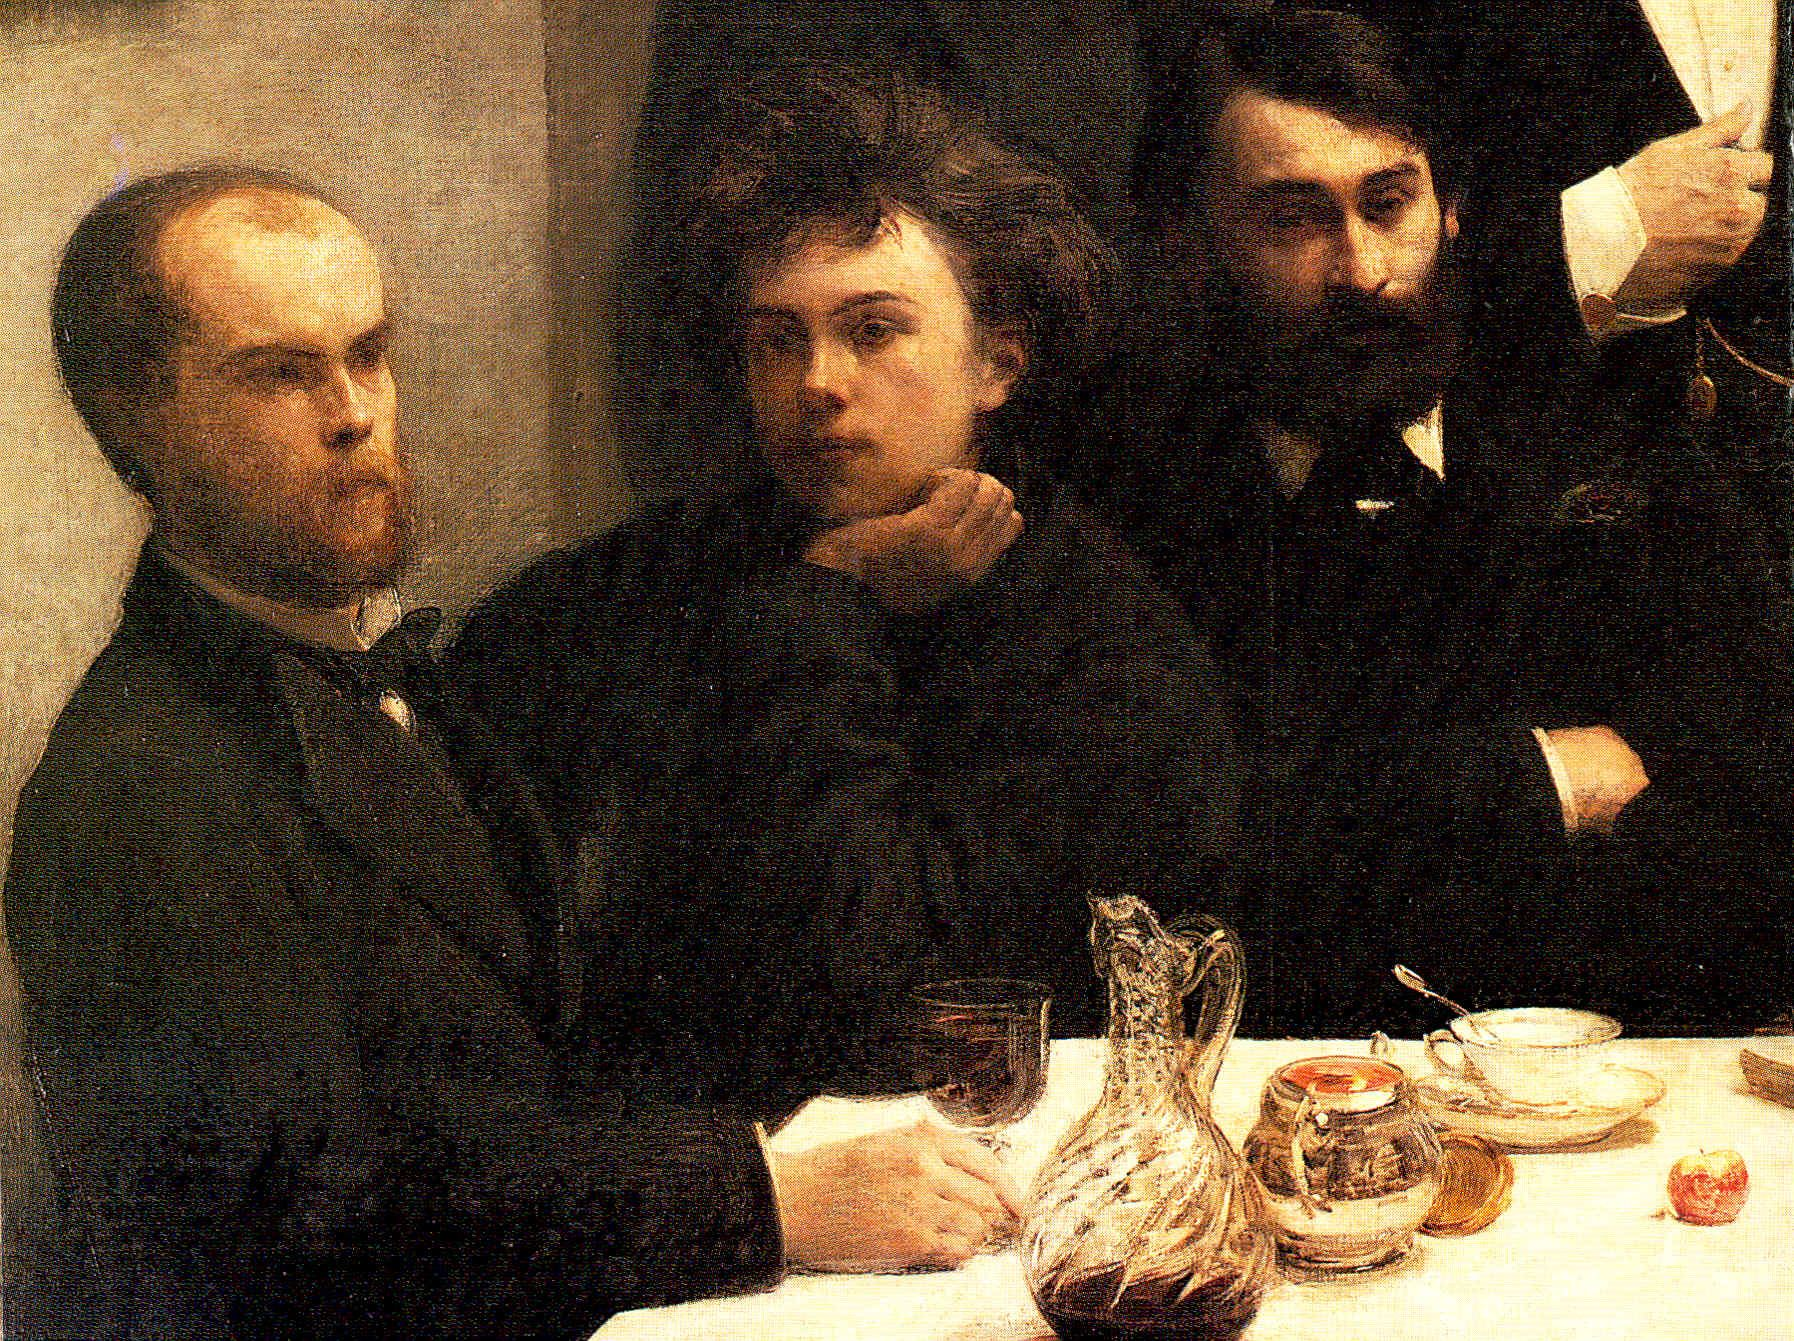 Detail:  By the Table , by Henri Fantin-Latour, a group portrait of French poets. This detail shows Verlaine (left) and Rimbaud seeming dreamy, conspiratorial.